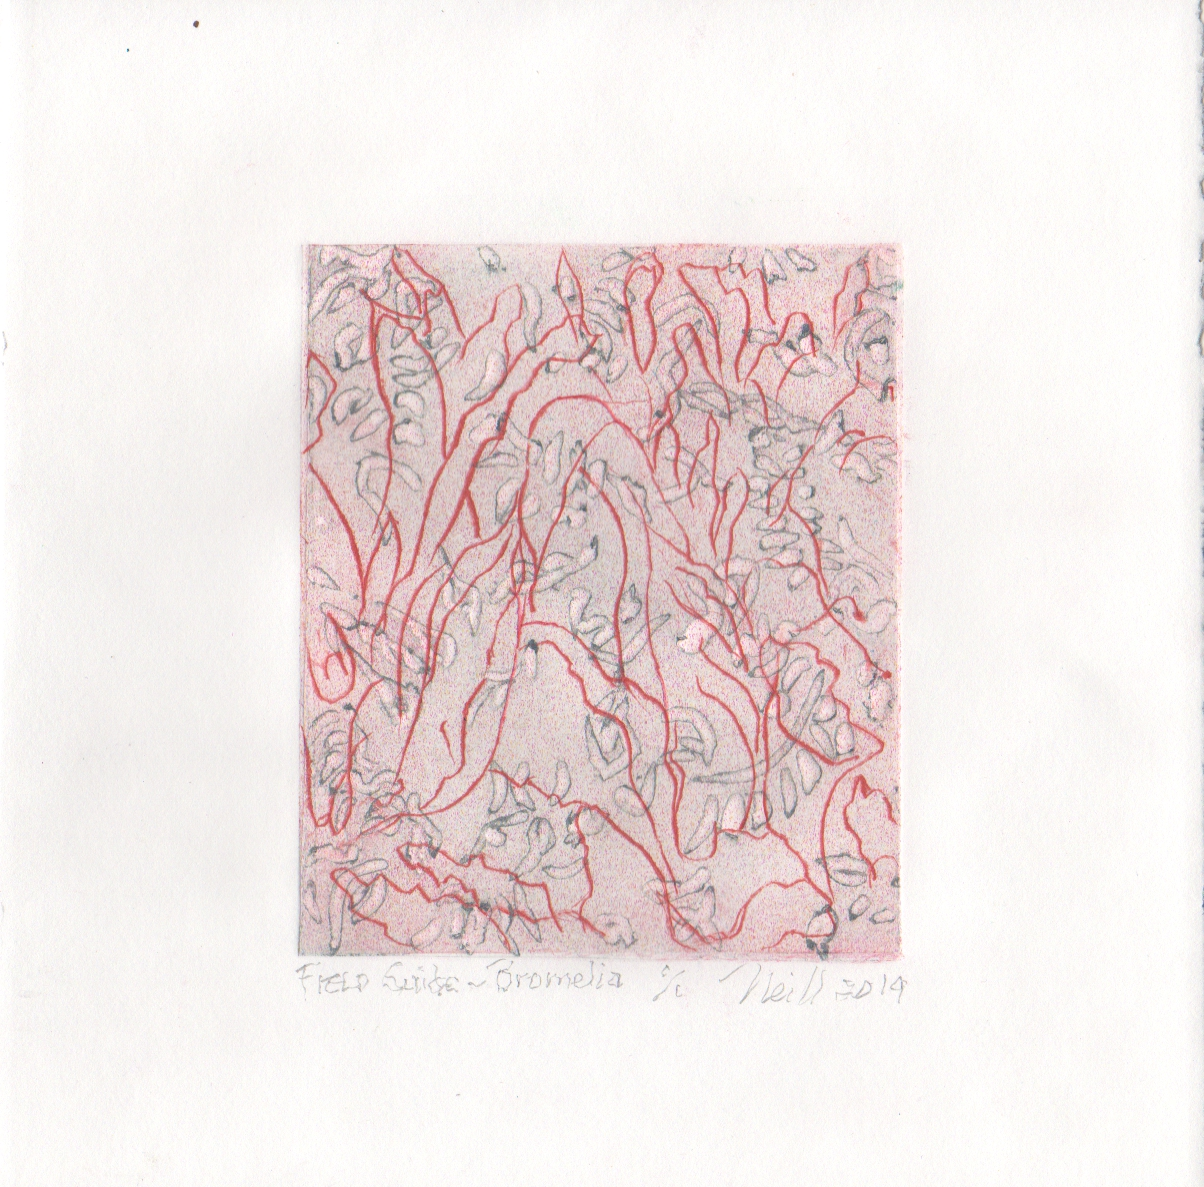 "Field Guild-Bromelia, 1/1, 2019, etching, embossing on paper, 5"" X 4"""